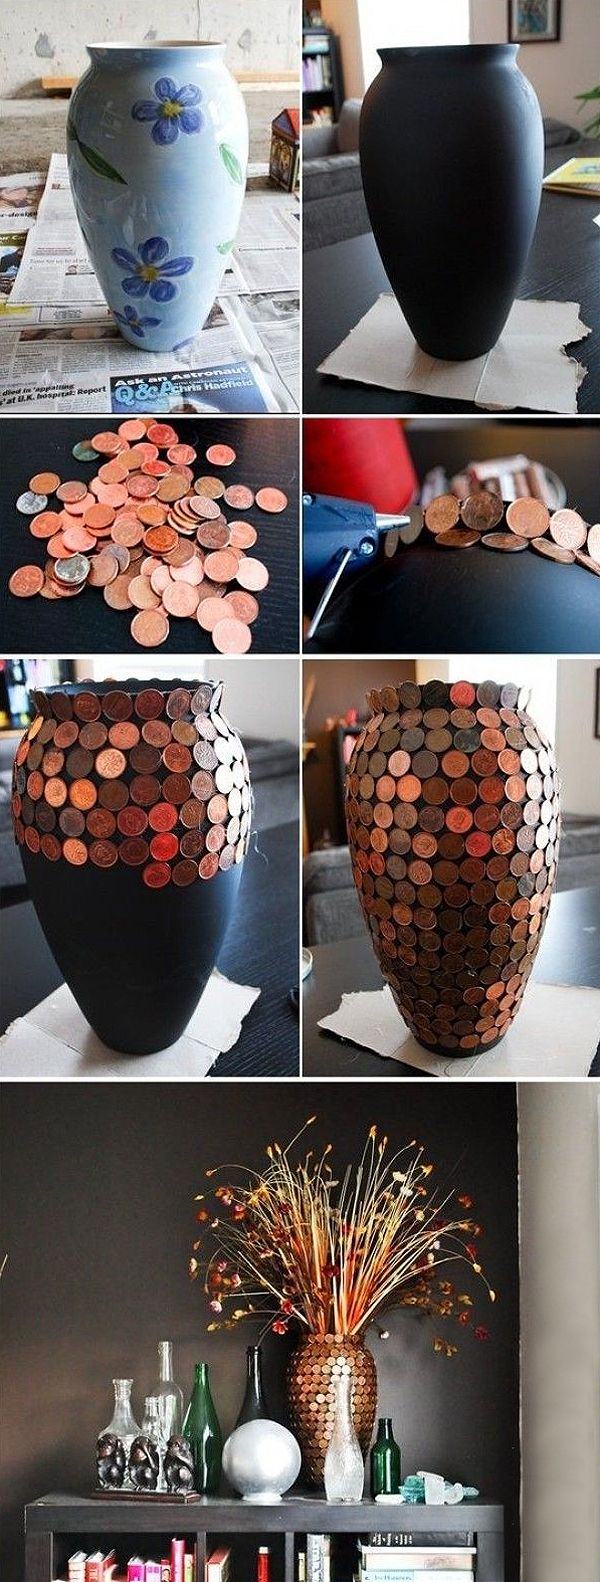 Penny Vase - How AWESOME!!! Op-Shop here I Come!!!